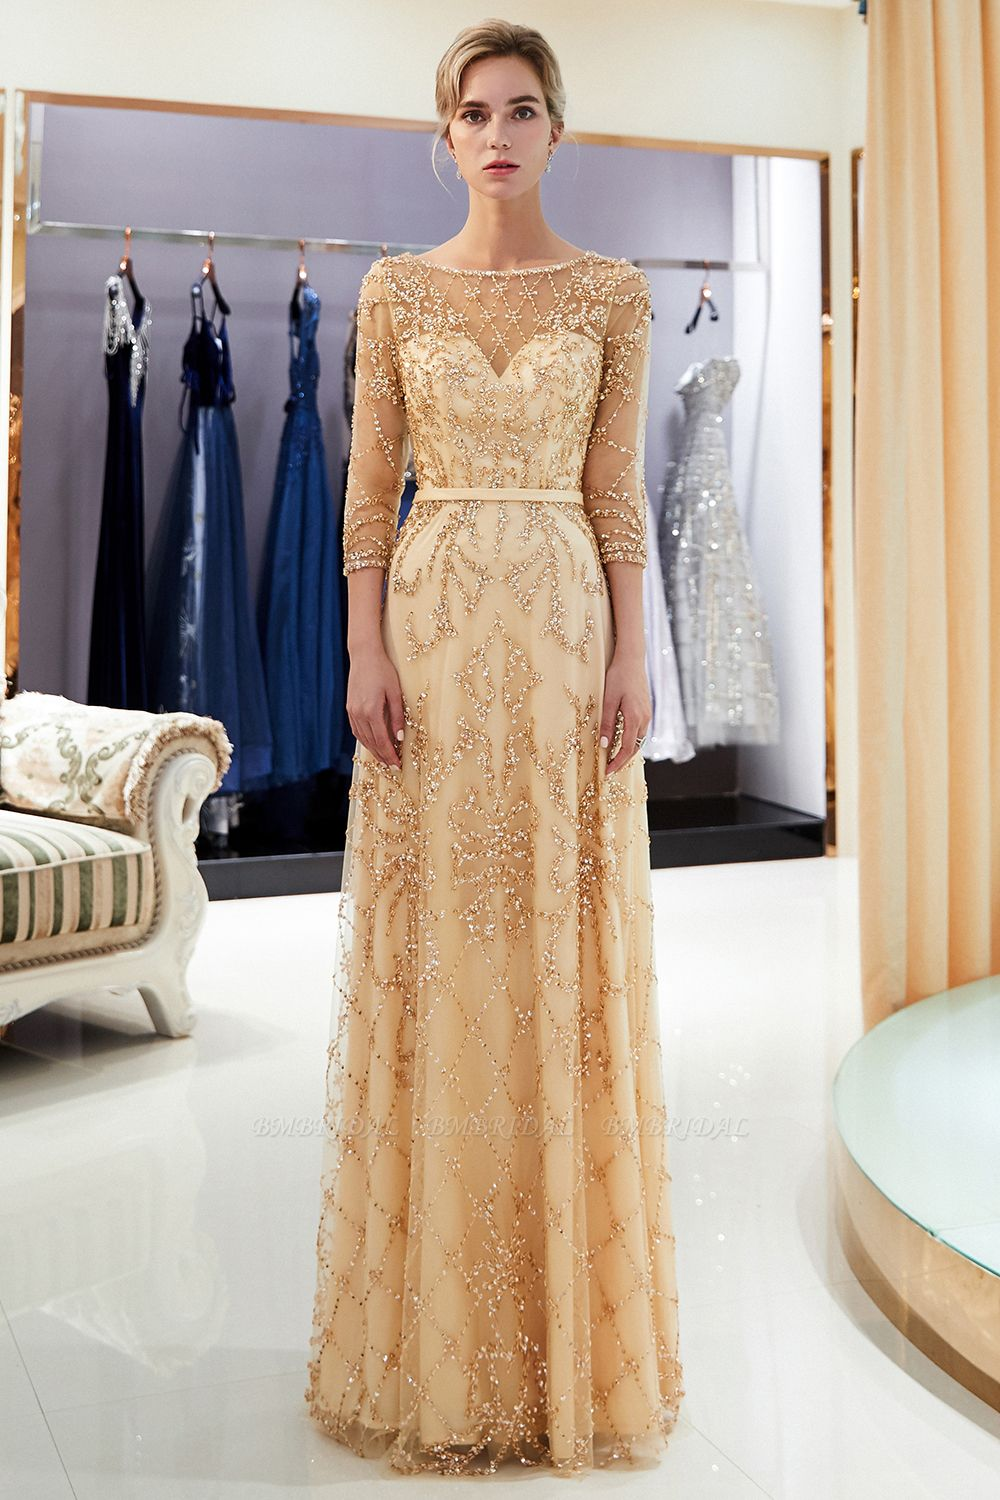 BMbridal Affordable A-line Illusion Neckline Prom Dresses Long Beading Evening Dresses with Sleeves